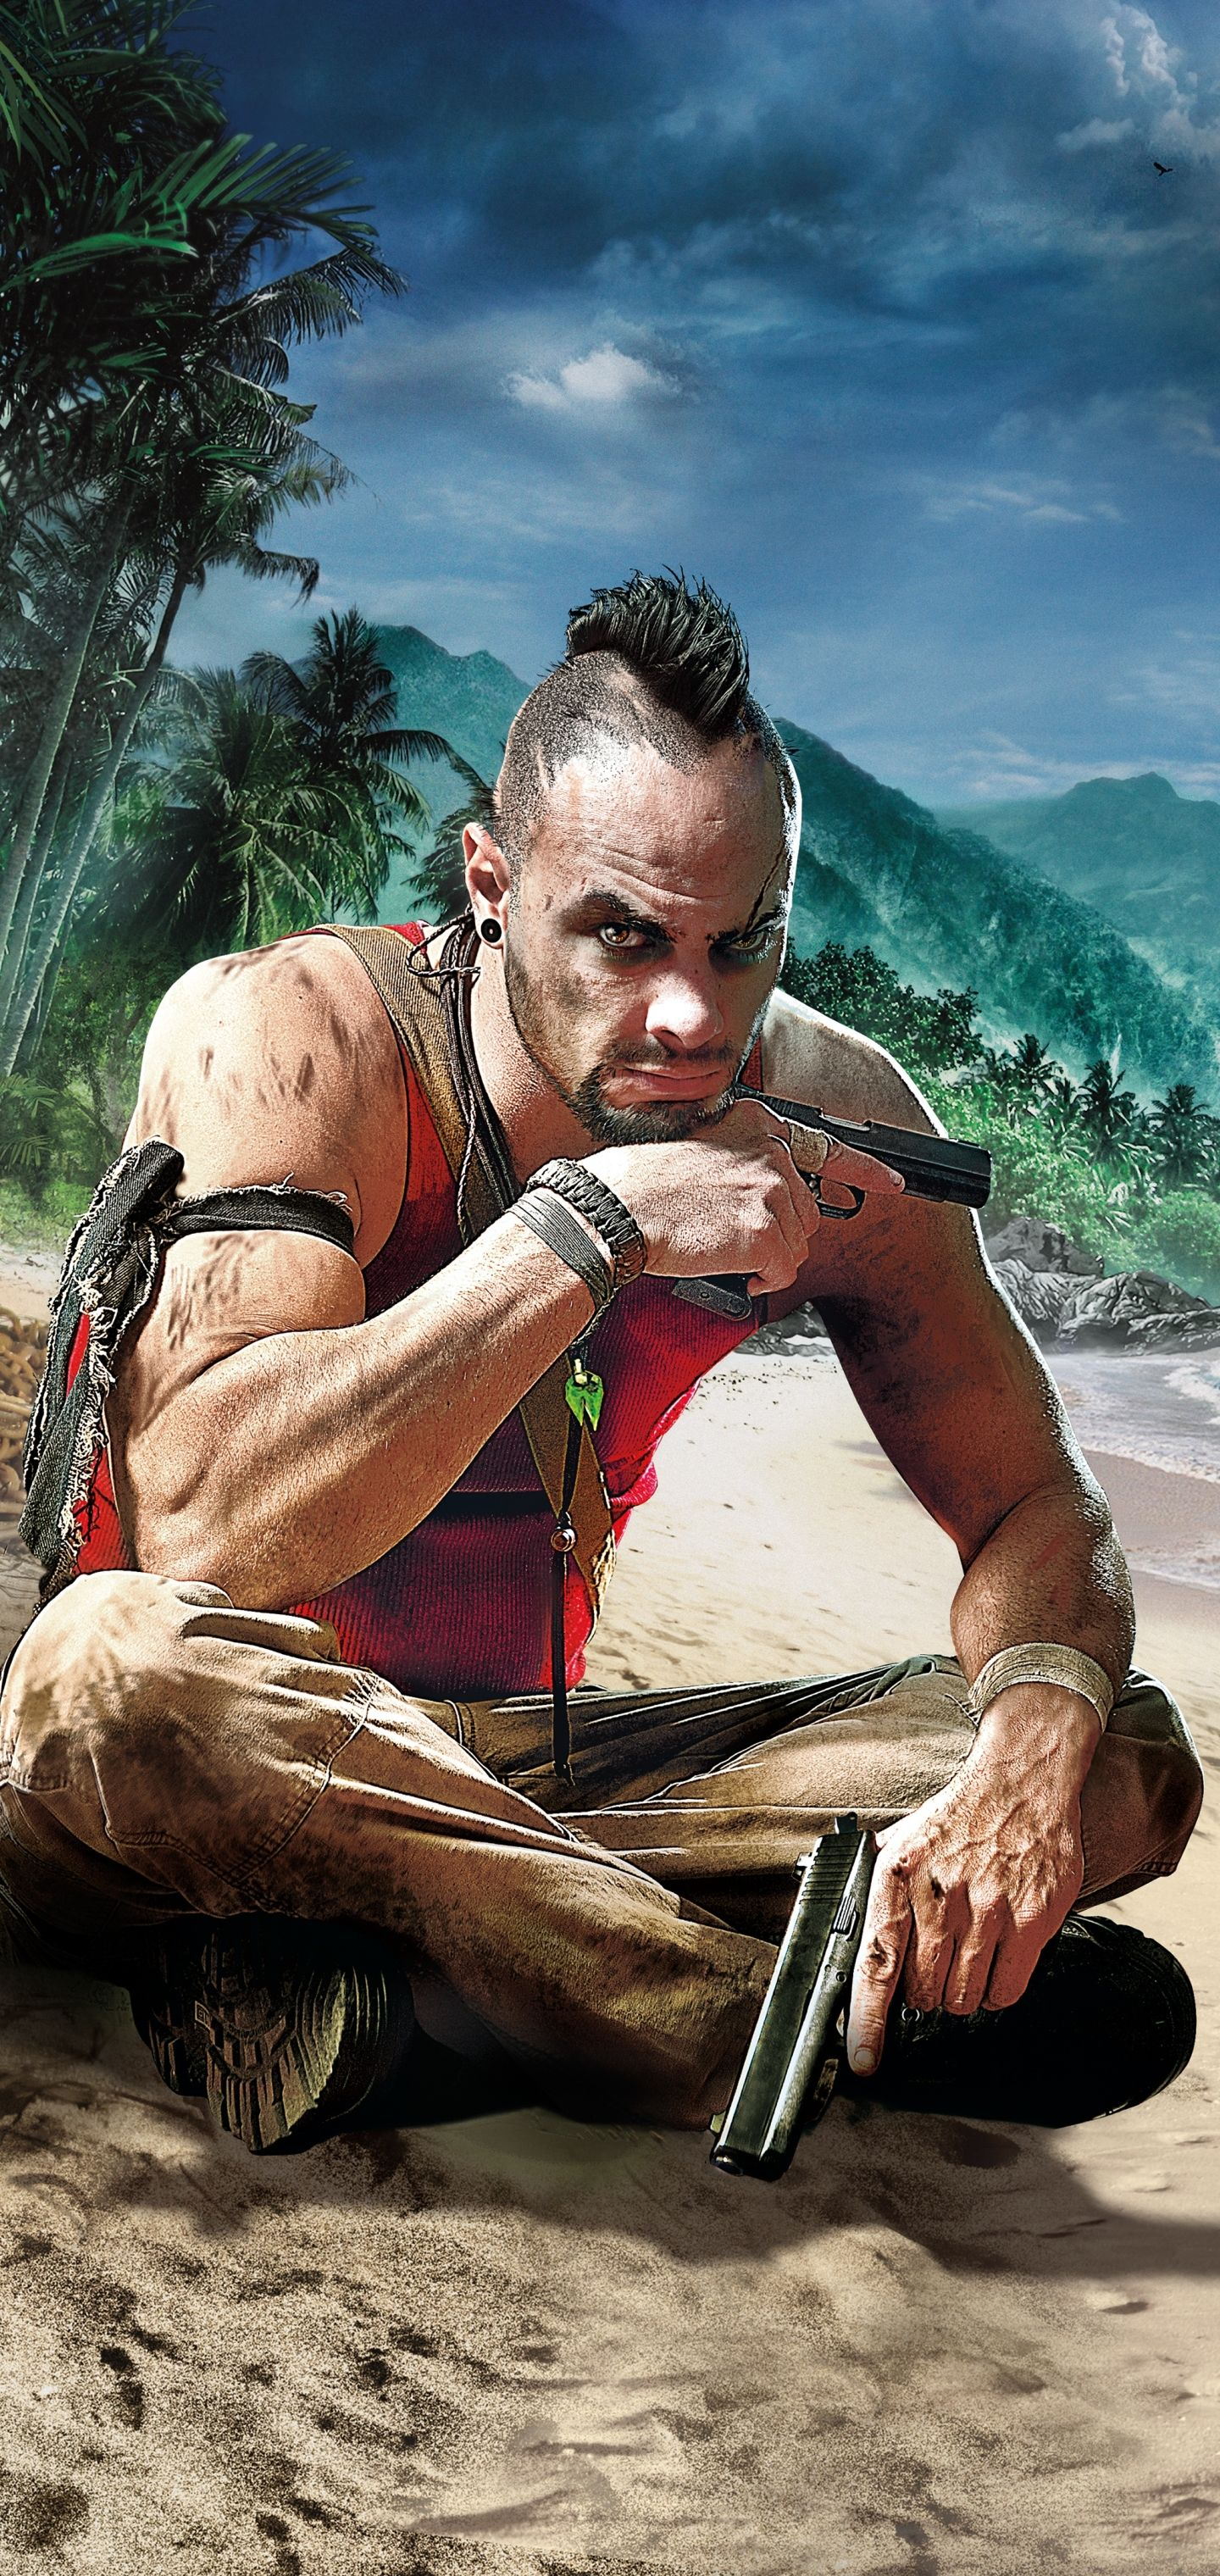 Far Cry 3 Mobile Wallpapers Wallpaper Cave